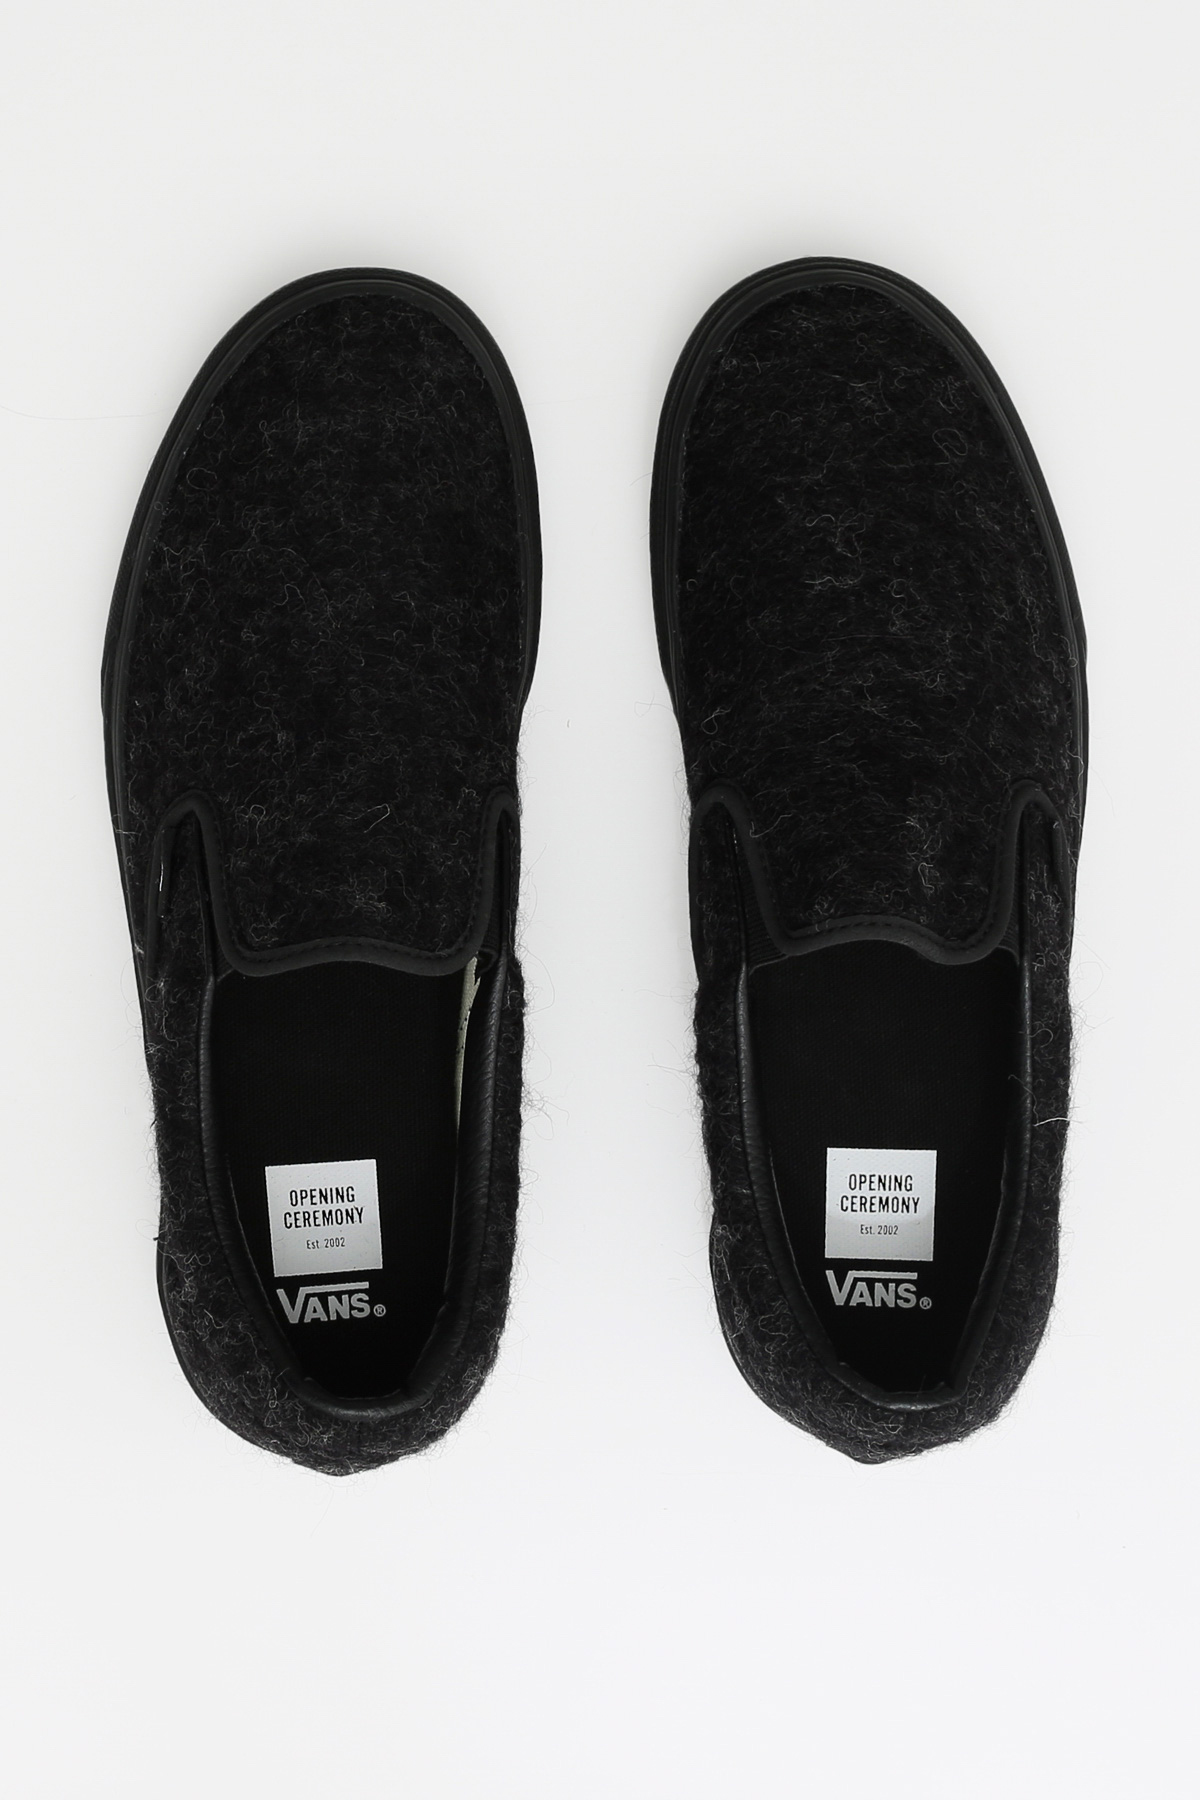 a7d71ccc54f3e6 Opening Ceremony x Vans Slip On